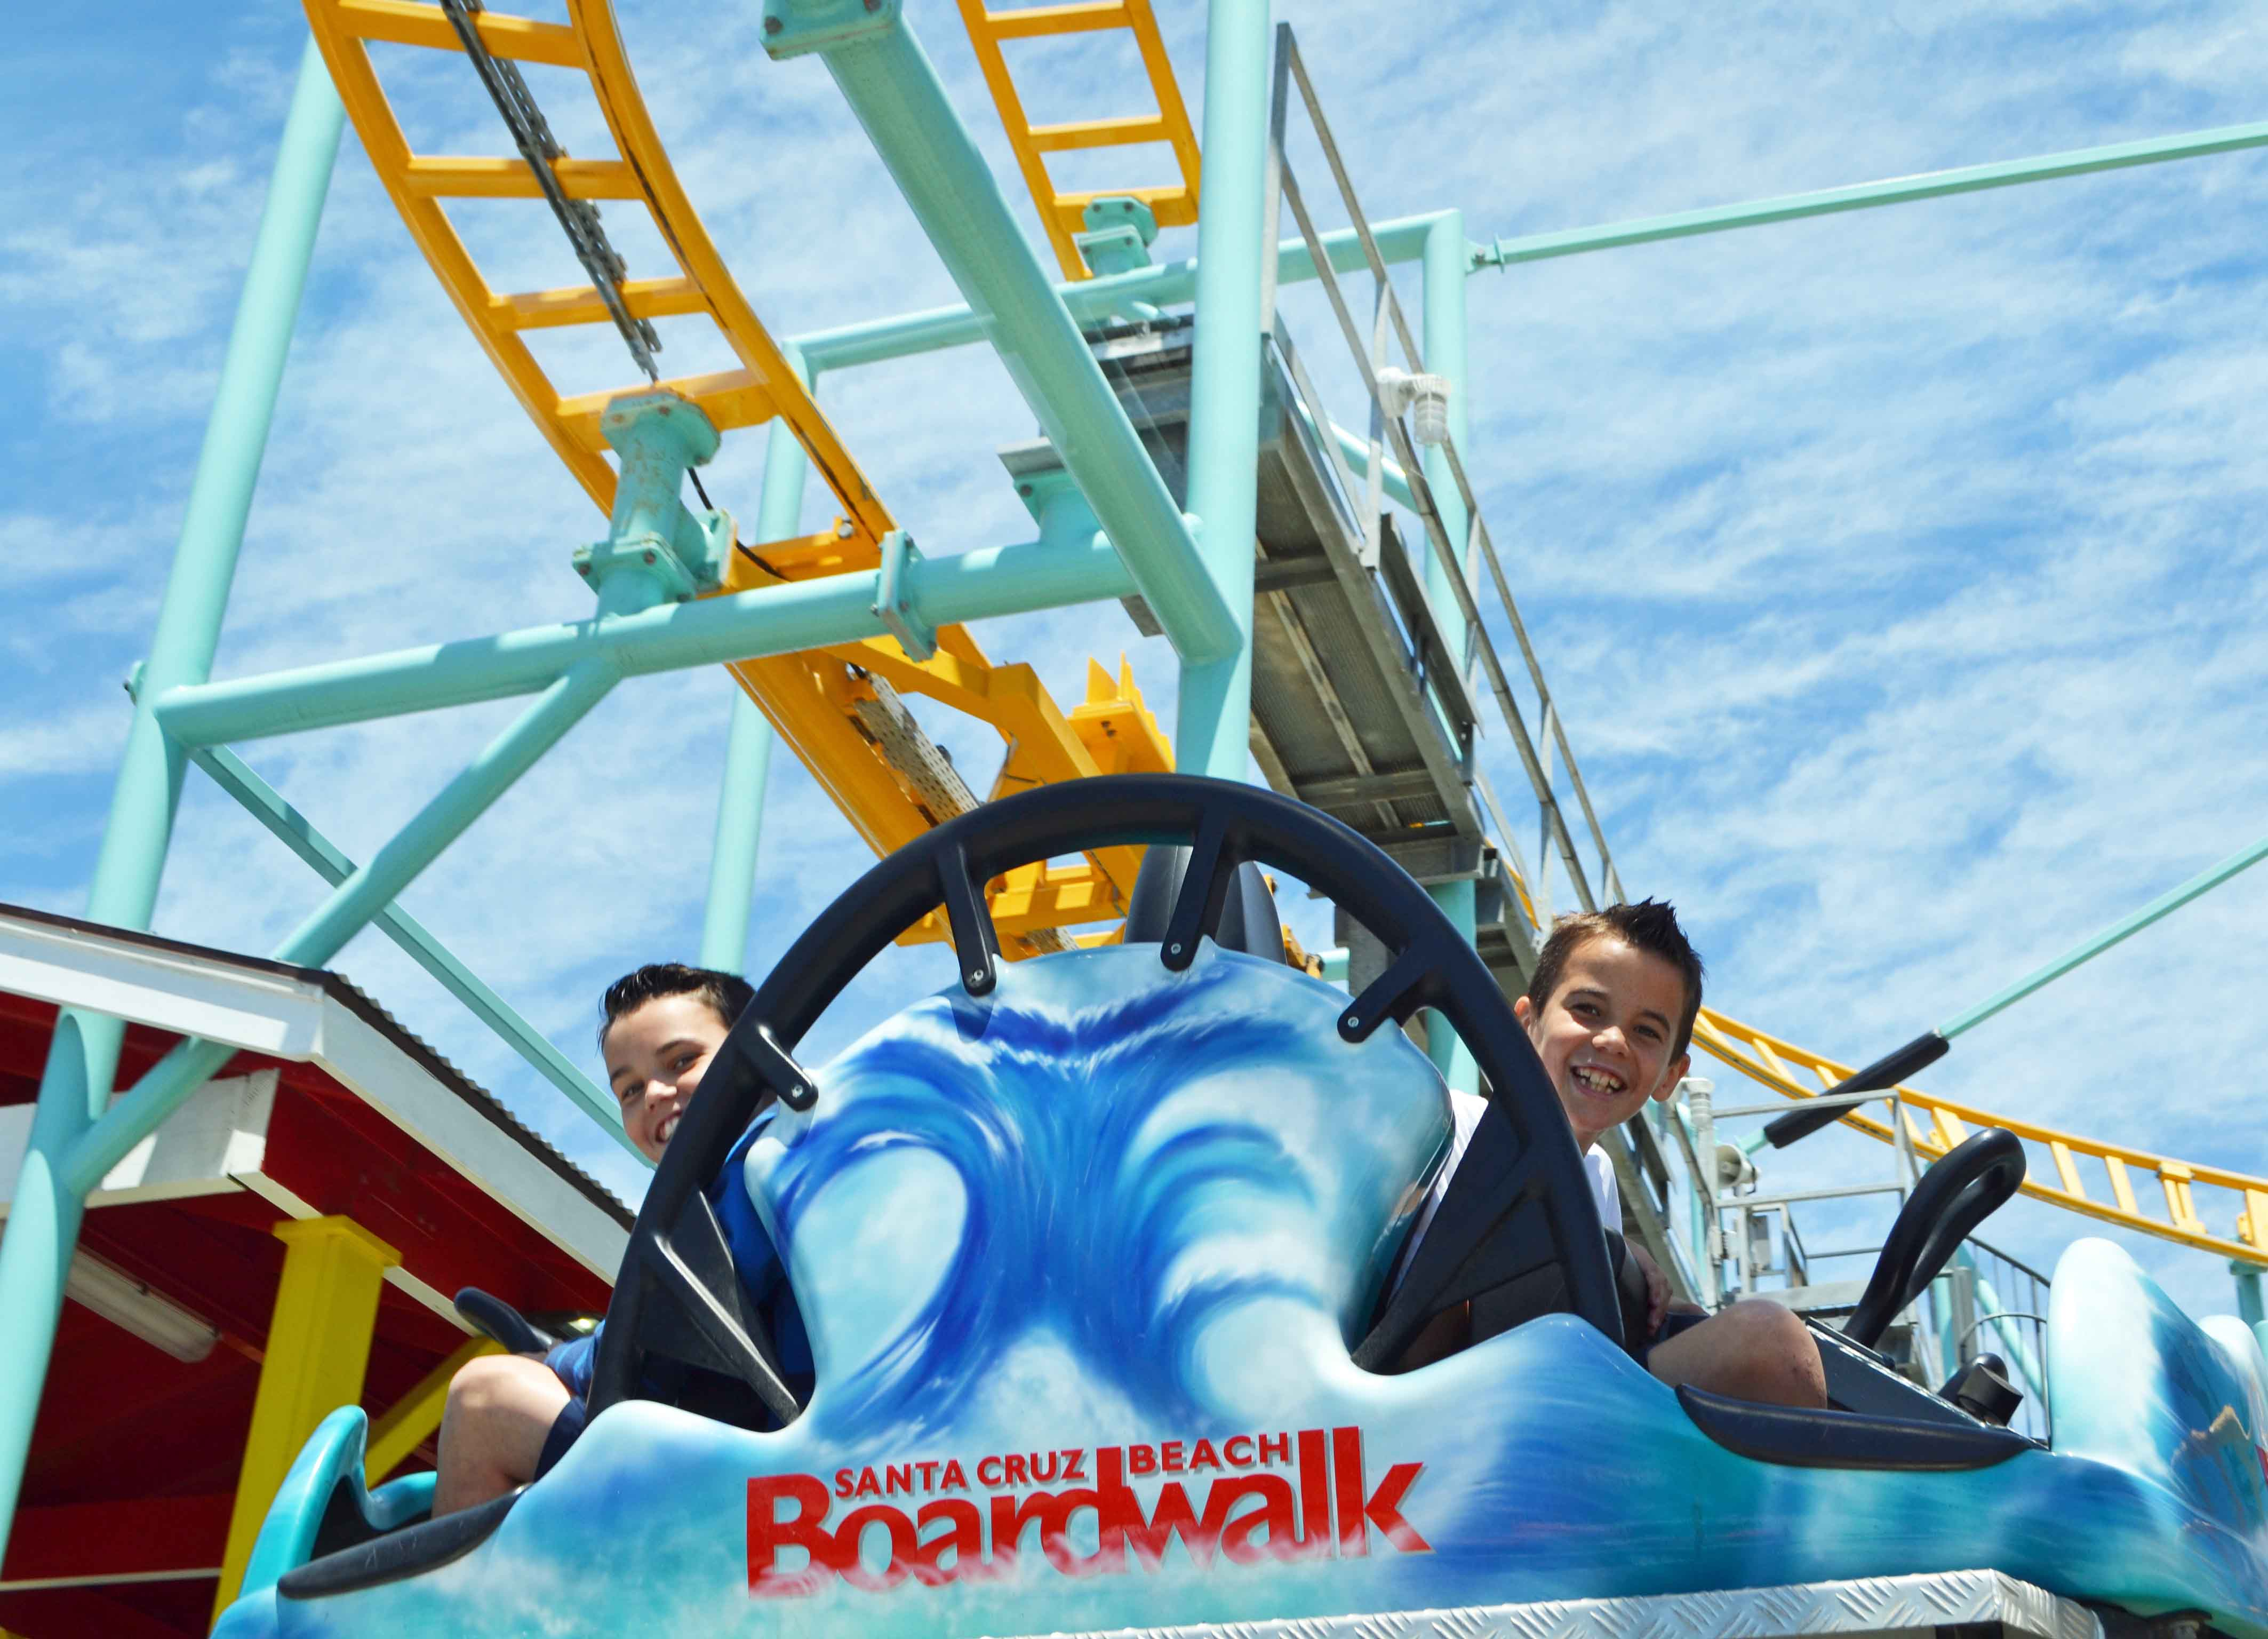 Santa Cruz Boardwalk California Pacific Coast Highway 1 Road Trip Guide